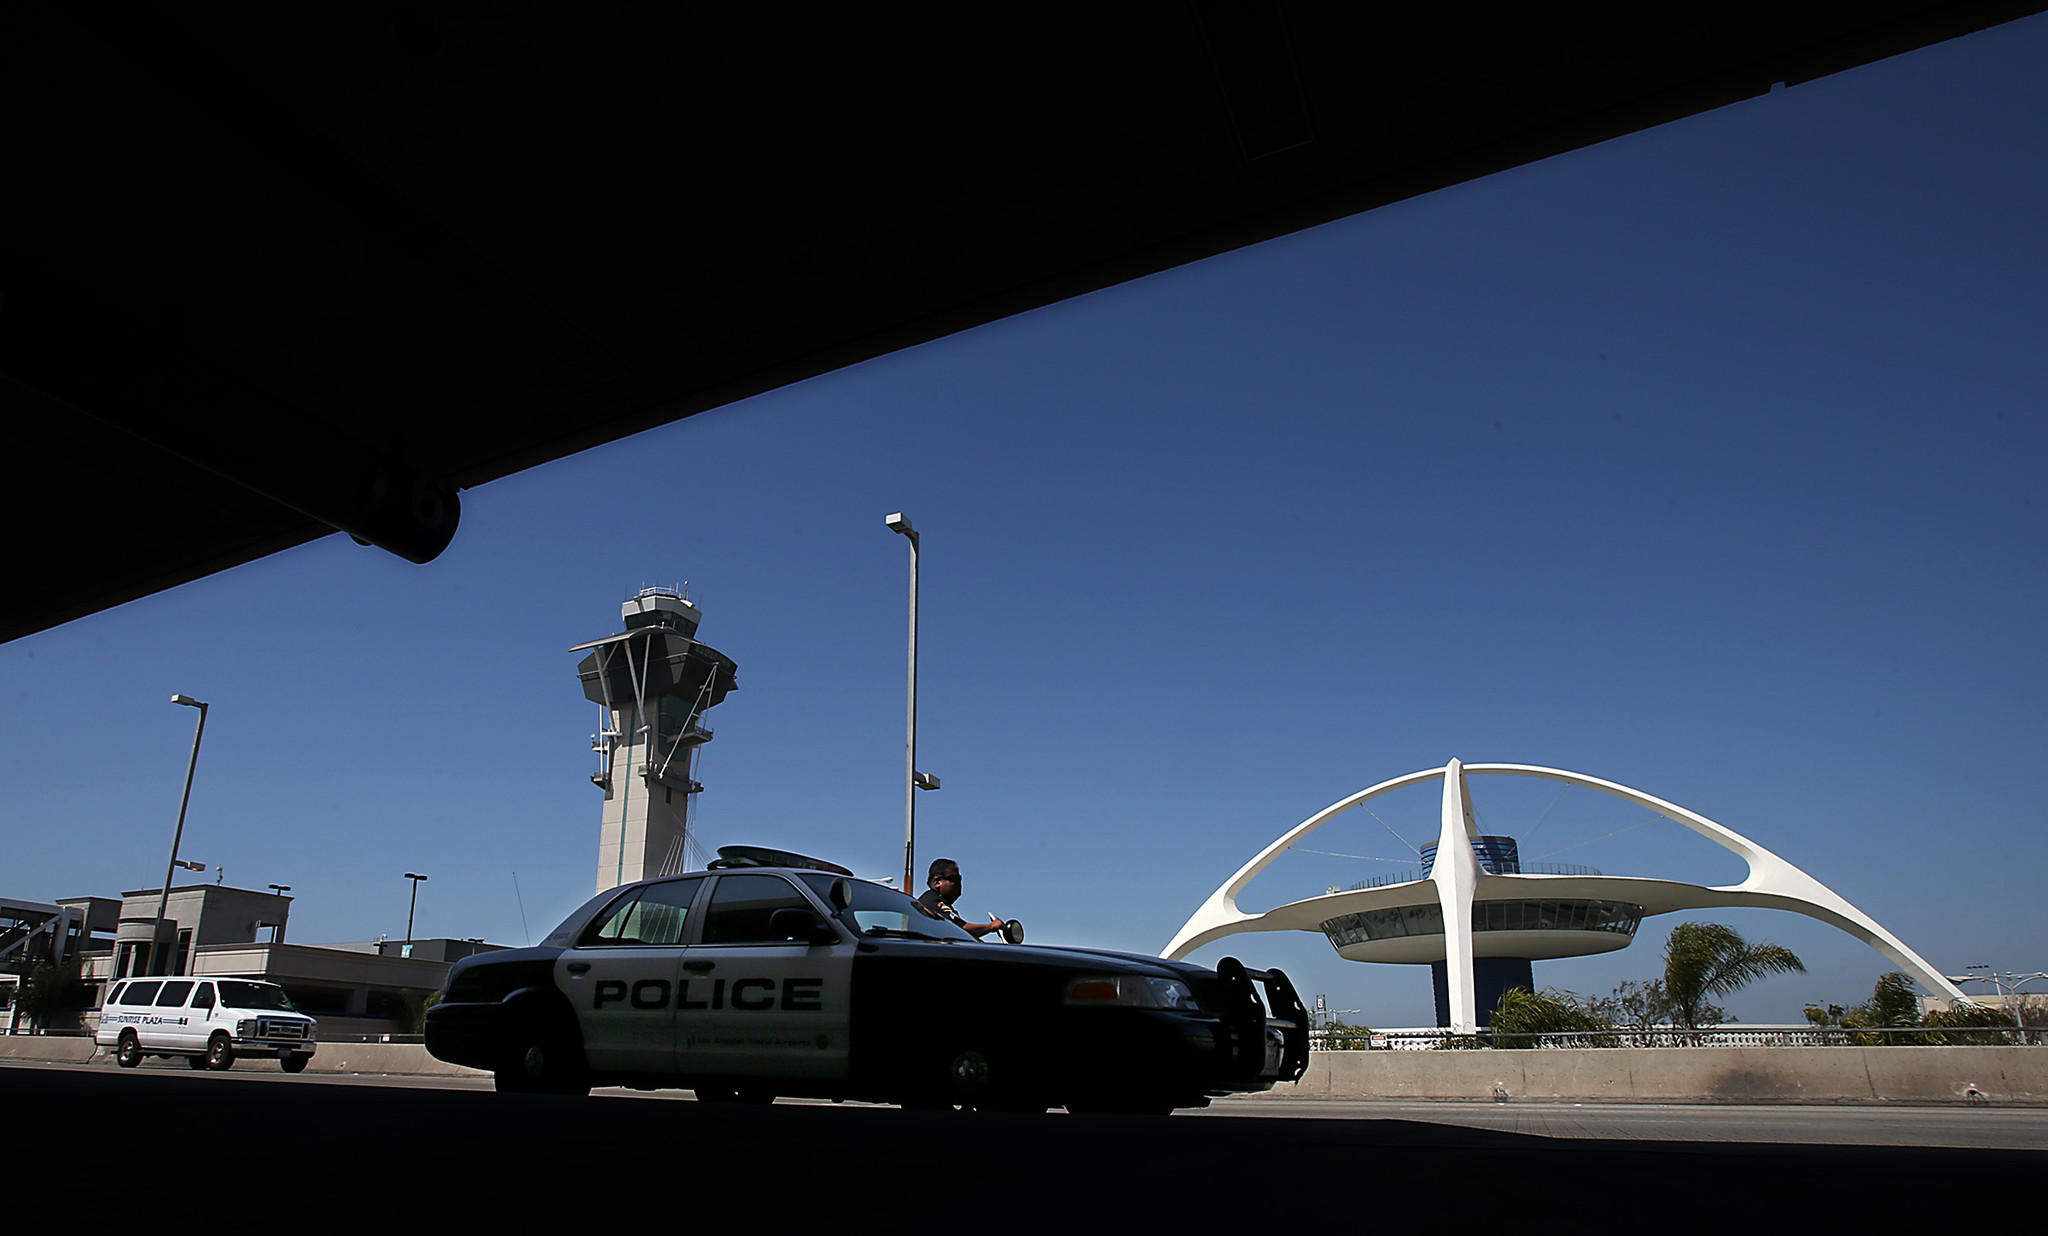 A Los Angeles Airport Police Department officer parks his patrol car outside Terminal 6. The family of a Transportation Security Administration officer slain in a shooting at LAX has filed a claim against the city, alleging the wrongful death of Gerardo Hernandez and seeking damages in excess of $25 million.